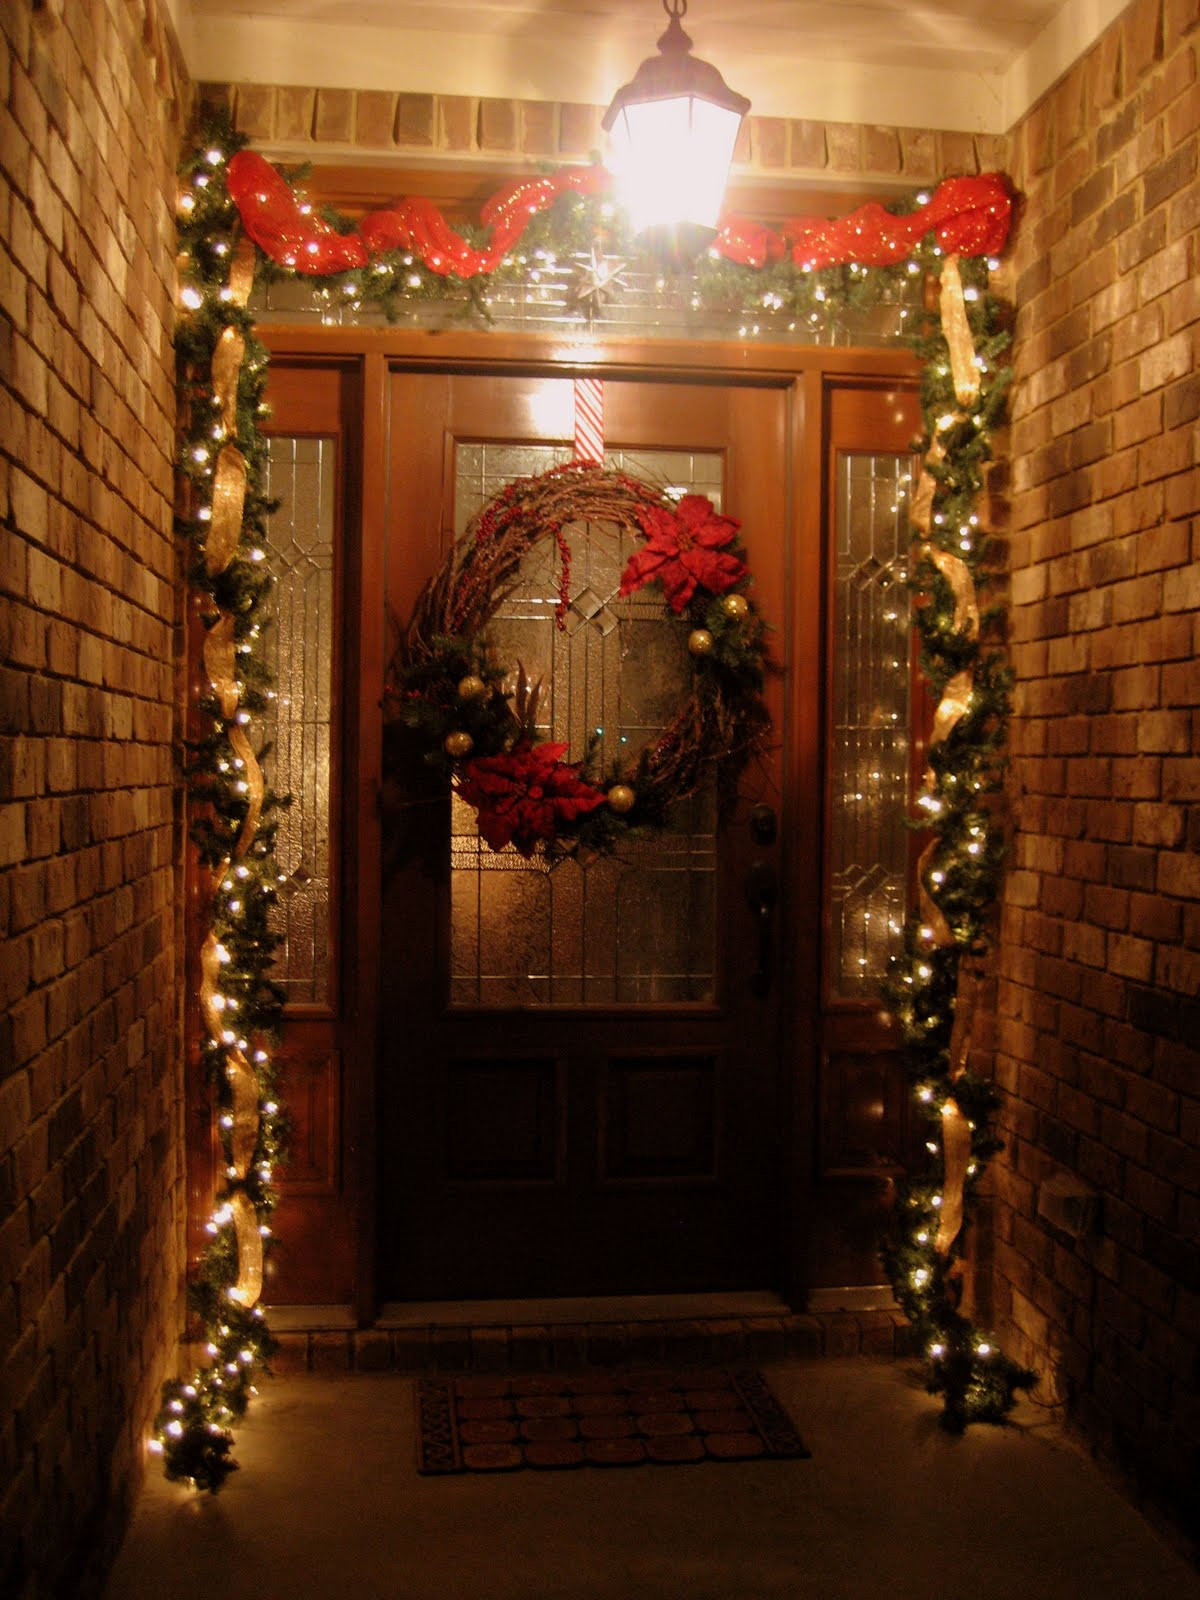 Christmas Decoration Ideas Awesome 35 Front Door Christmas Decorations Ideas Of Amazing 45 Photos Christmas Decoration Ideas